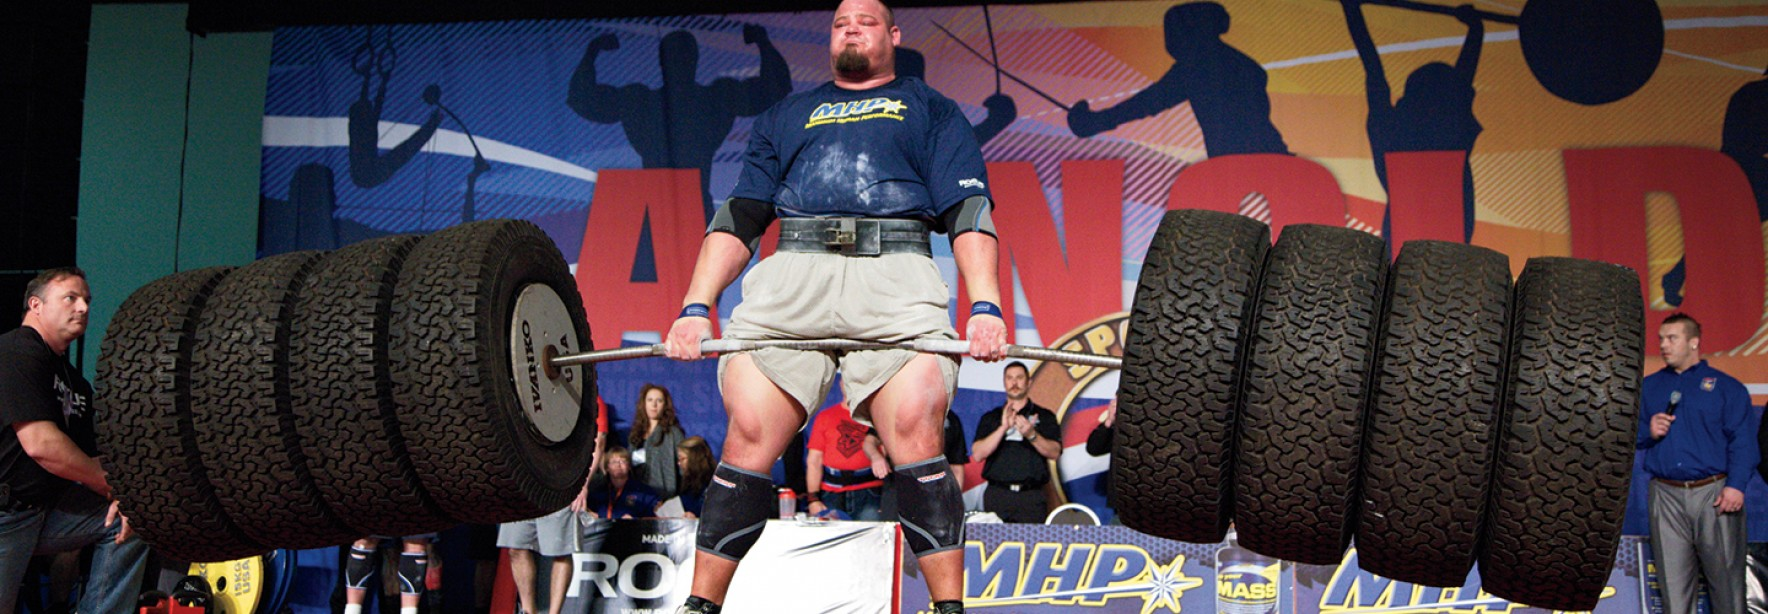 Brian Shaw, The Worlds Strongest Man, Joins Star-Studded 'Kickboxer' Cast